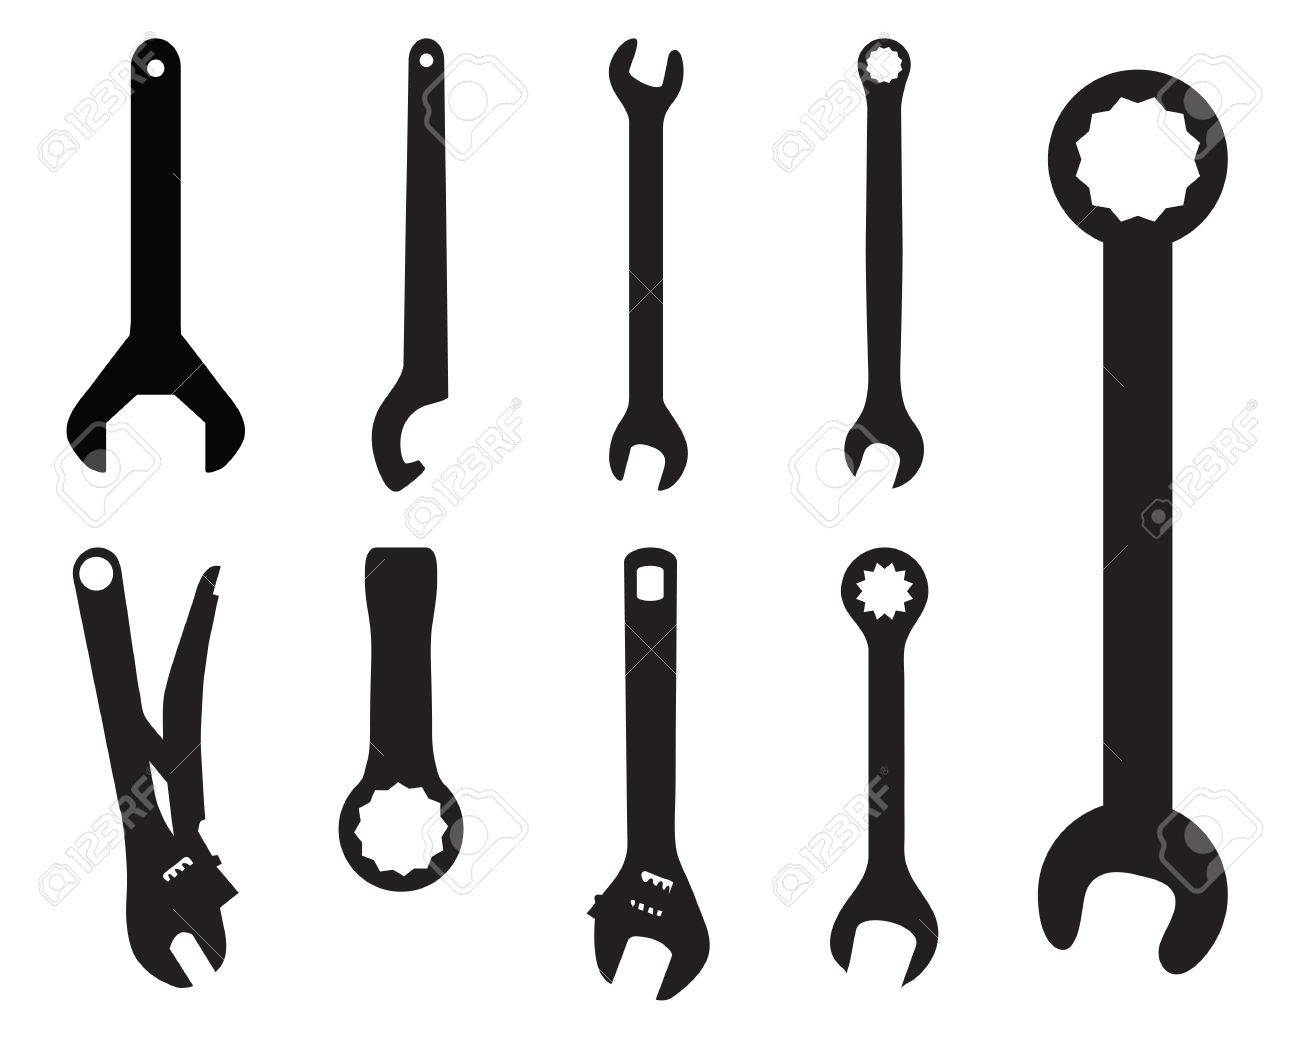 Wrench Black Vector Black silhouettes of screw